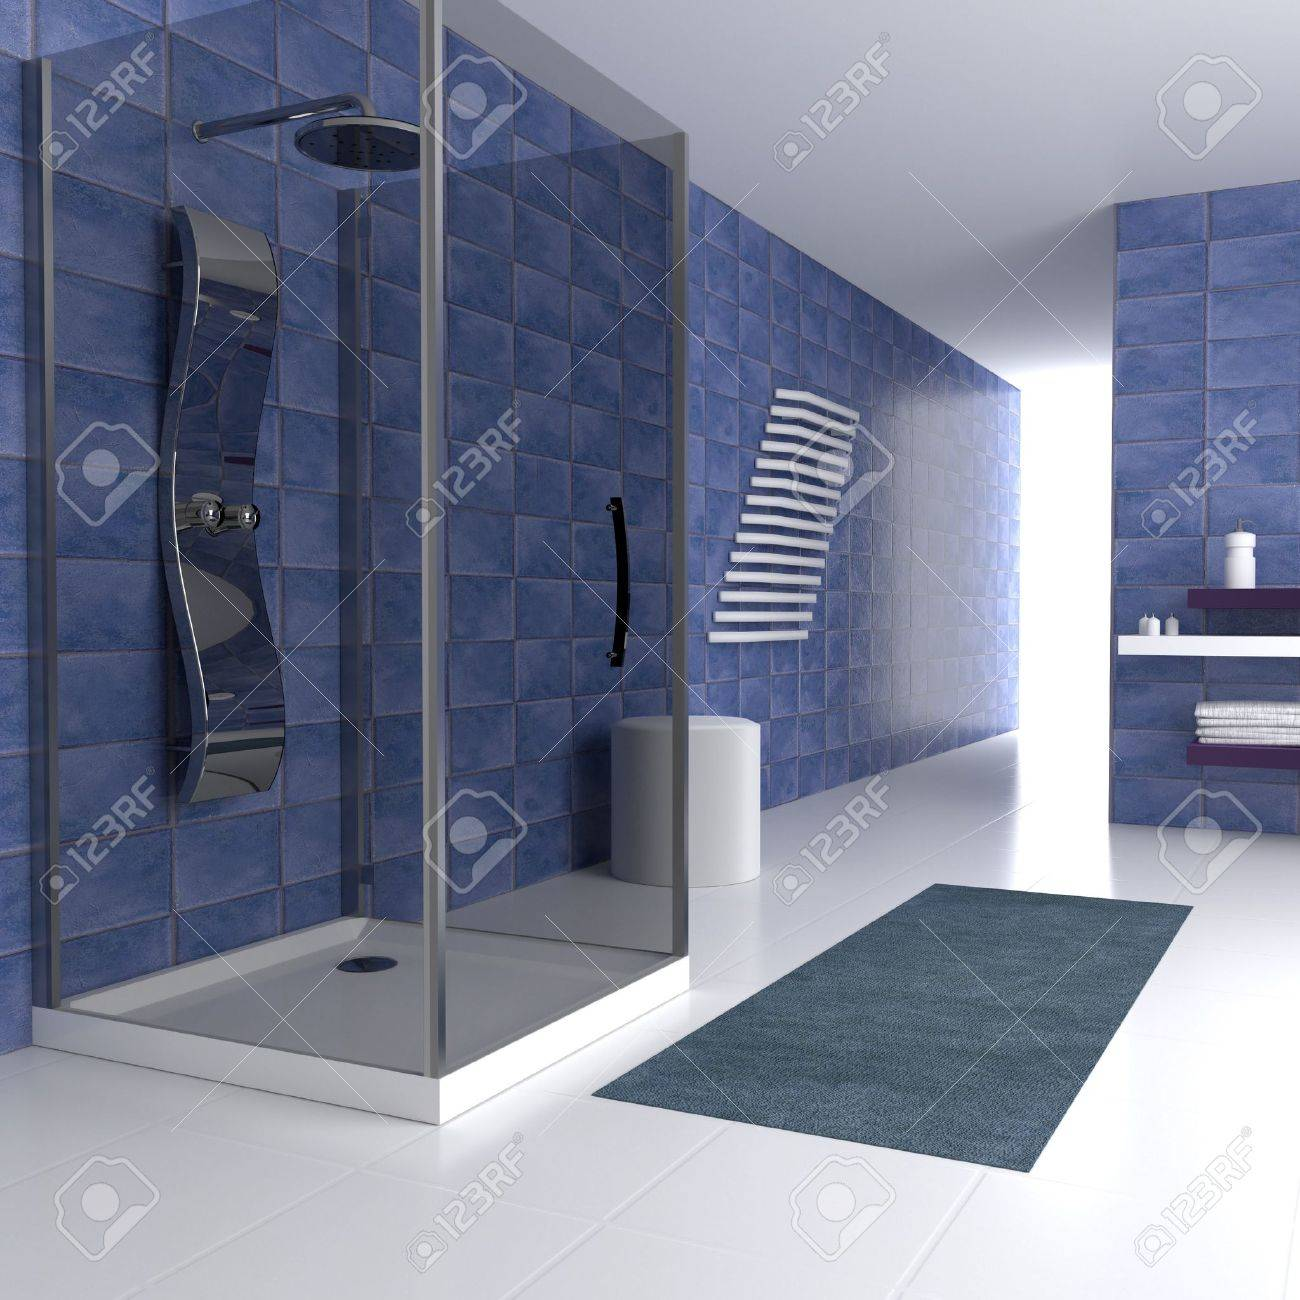 Simple bathroom shower - Simple Bathrooms With Shower Bathroom Shower Simple Blue Bathing In 3d With Metal Shower